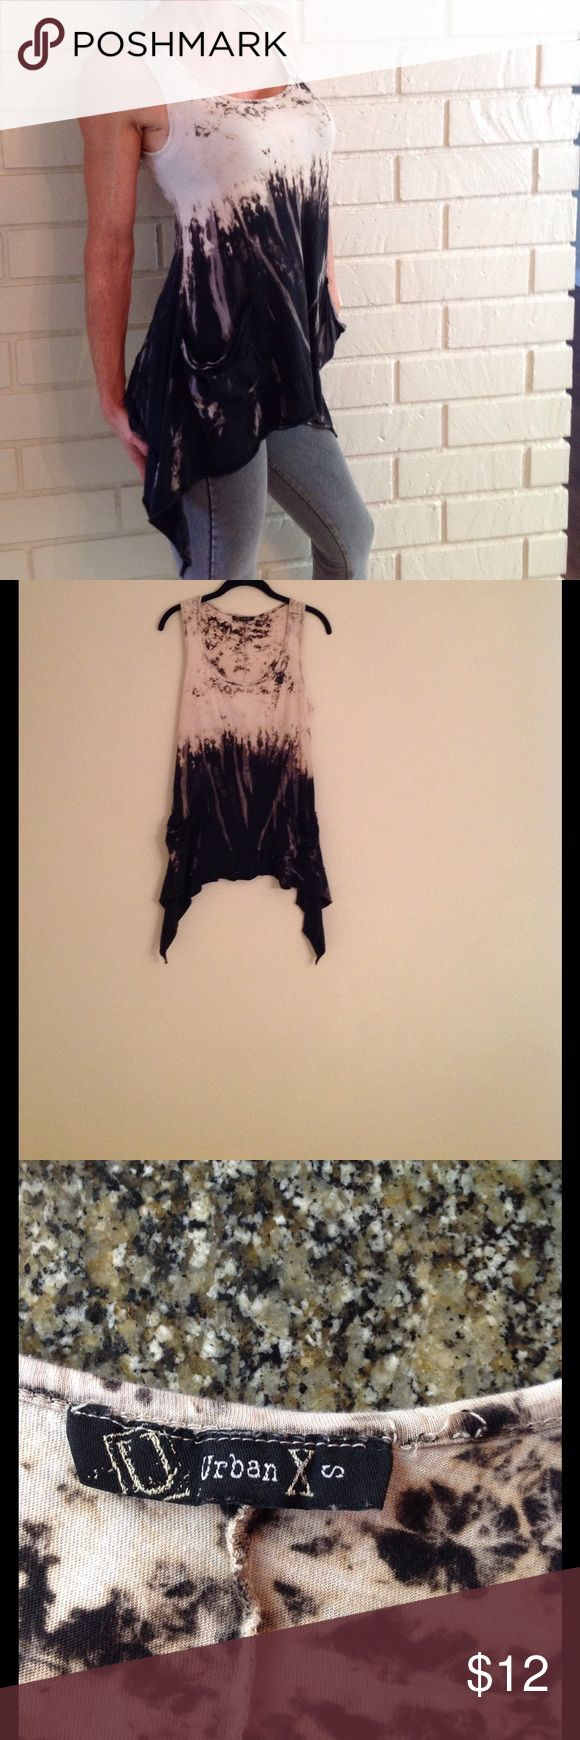 Urban X Tie dye Shirt Bundle of 3 Urban X brand tie-dye shirt bundle of 3 shirts! 1st is black & white boho chic style, 2nd is Tan and black tie dye shirt, Size small but loose fitting, Has front pockets and high low hem on sides. 3rd is blue with some rhinestones missing so I'm really throwing this in for free! Great with skinny jeans for summer. All 3 for this price! Urban X Tops Tunics